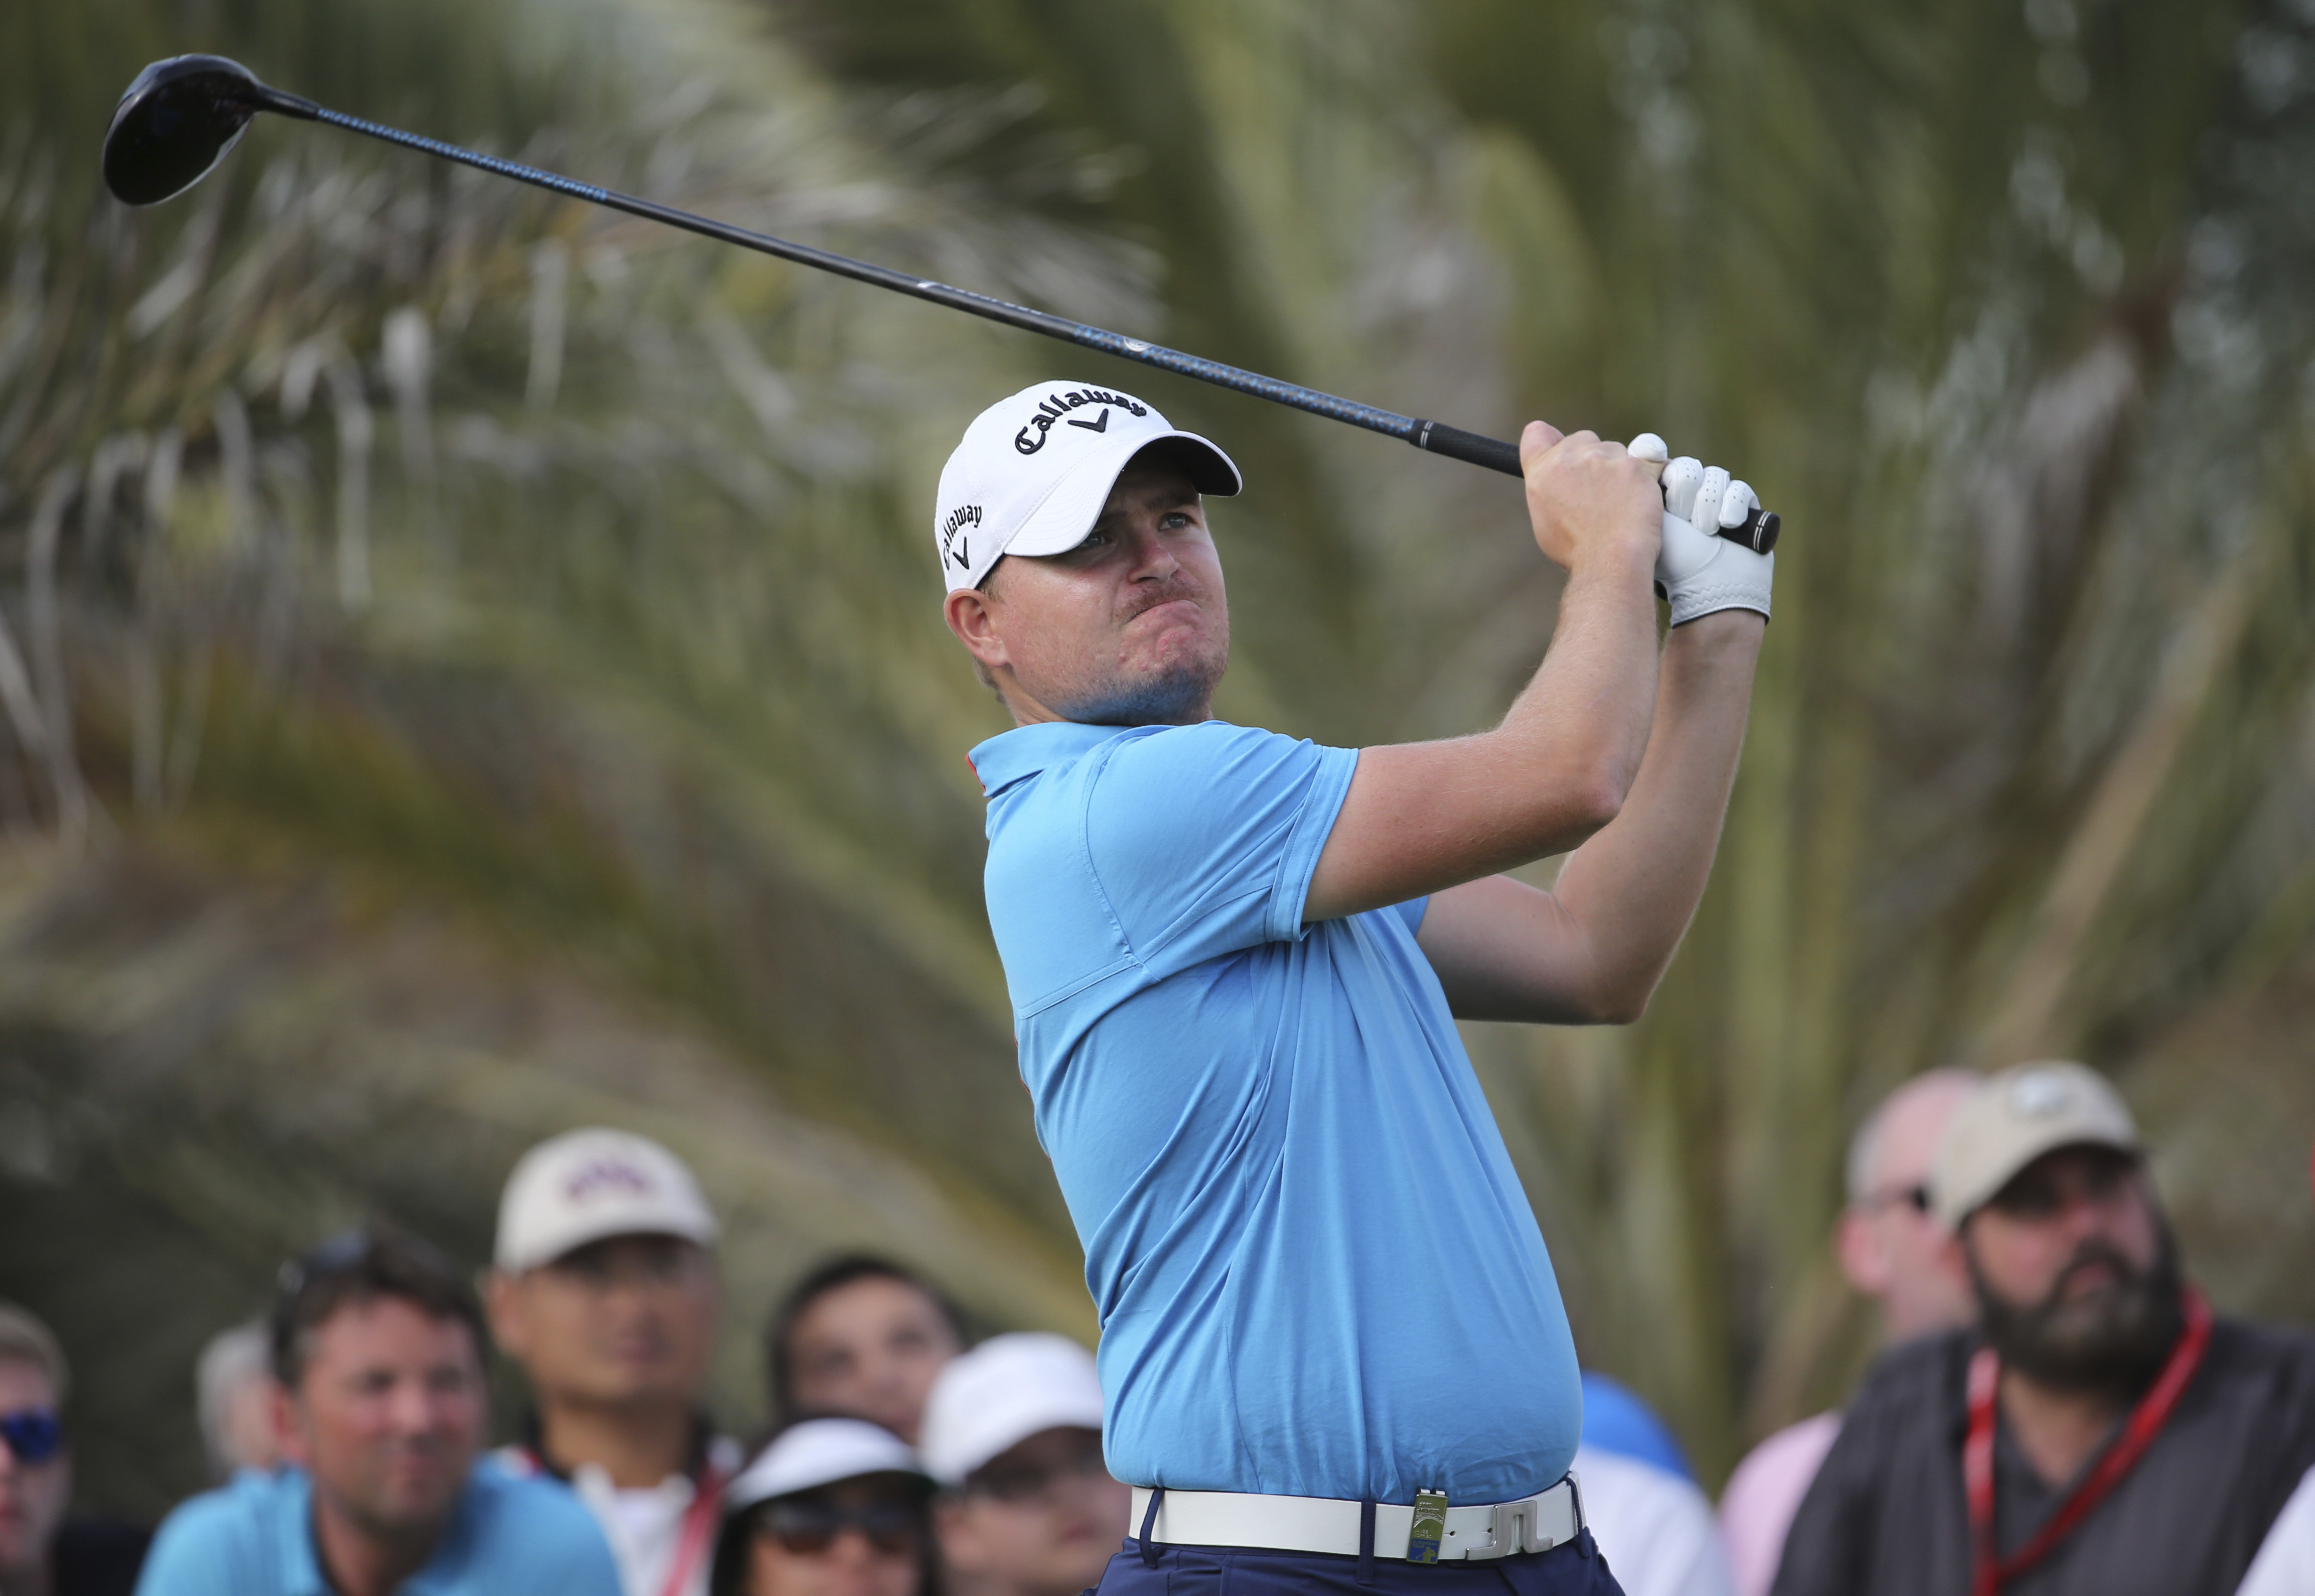 James Morrison of England tees off on the 14th hole during the third round of the HSBC Golf Championship in Abu Dhabi, United Arab Emirates, Saturday, Jan. 17, 2015. (AP Photo/Kamran Jebreili)